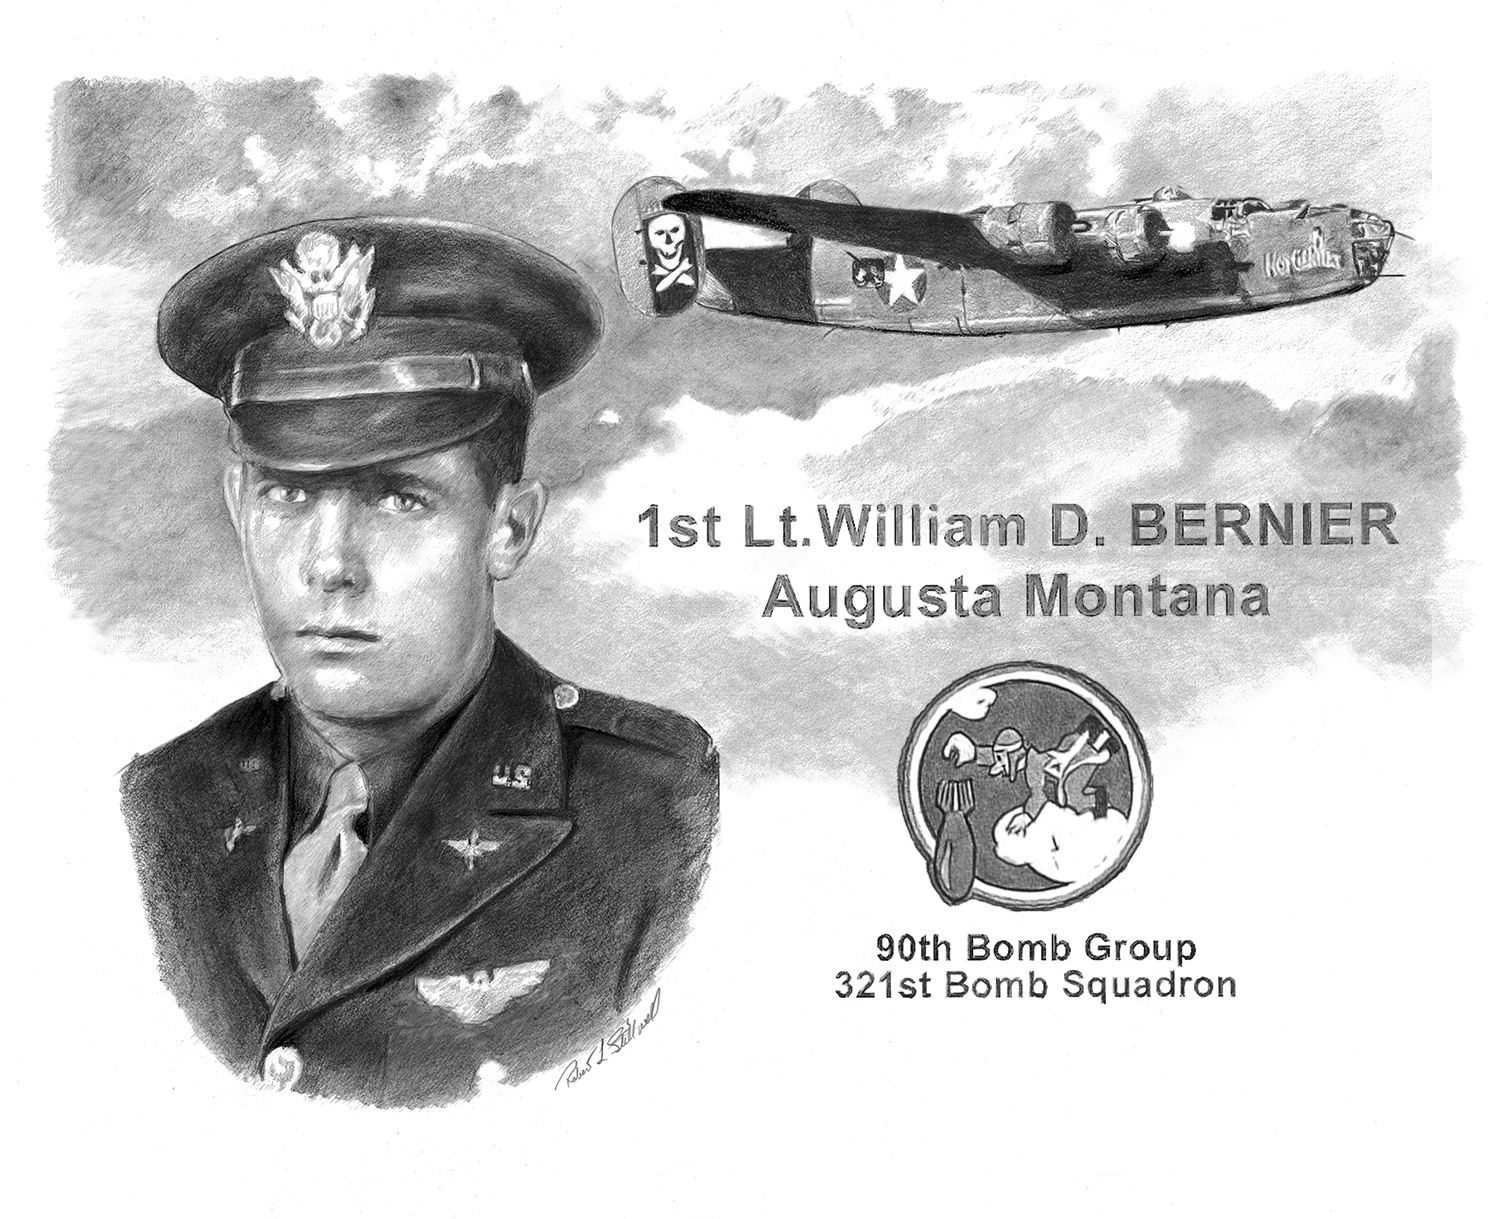 WWII Airman lost in Pacific brought home to Montana after 70 year ...